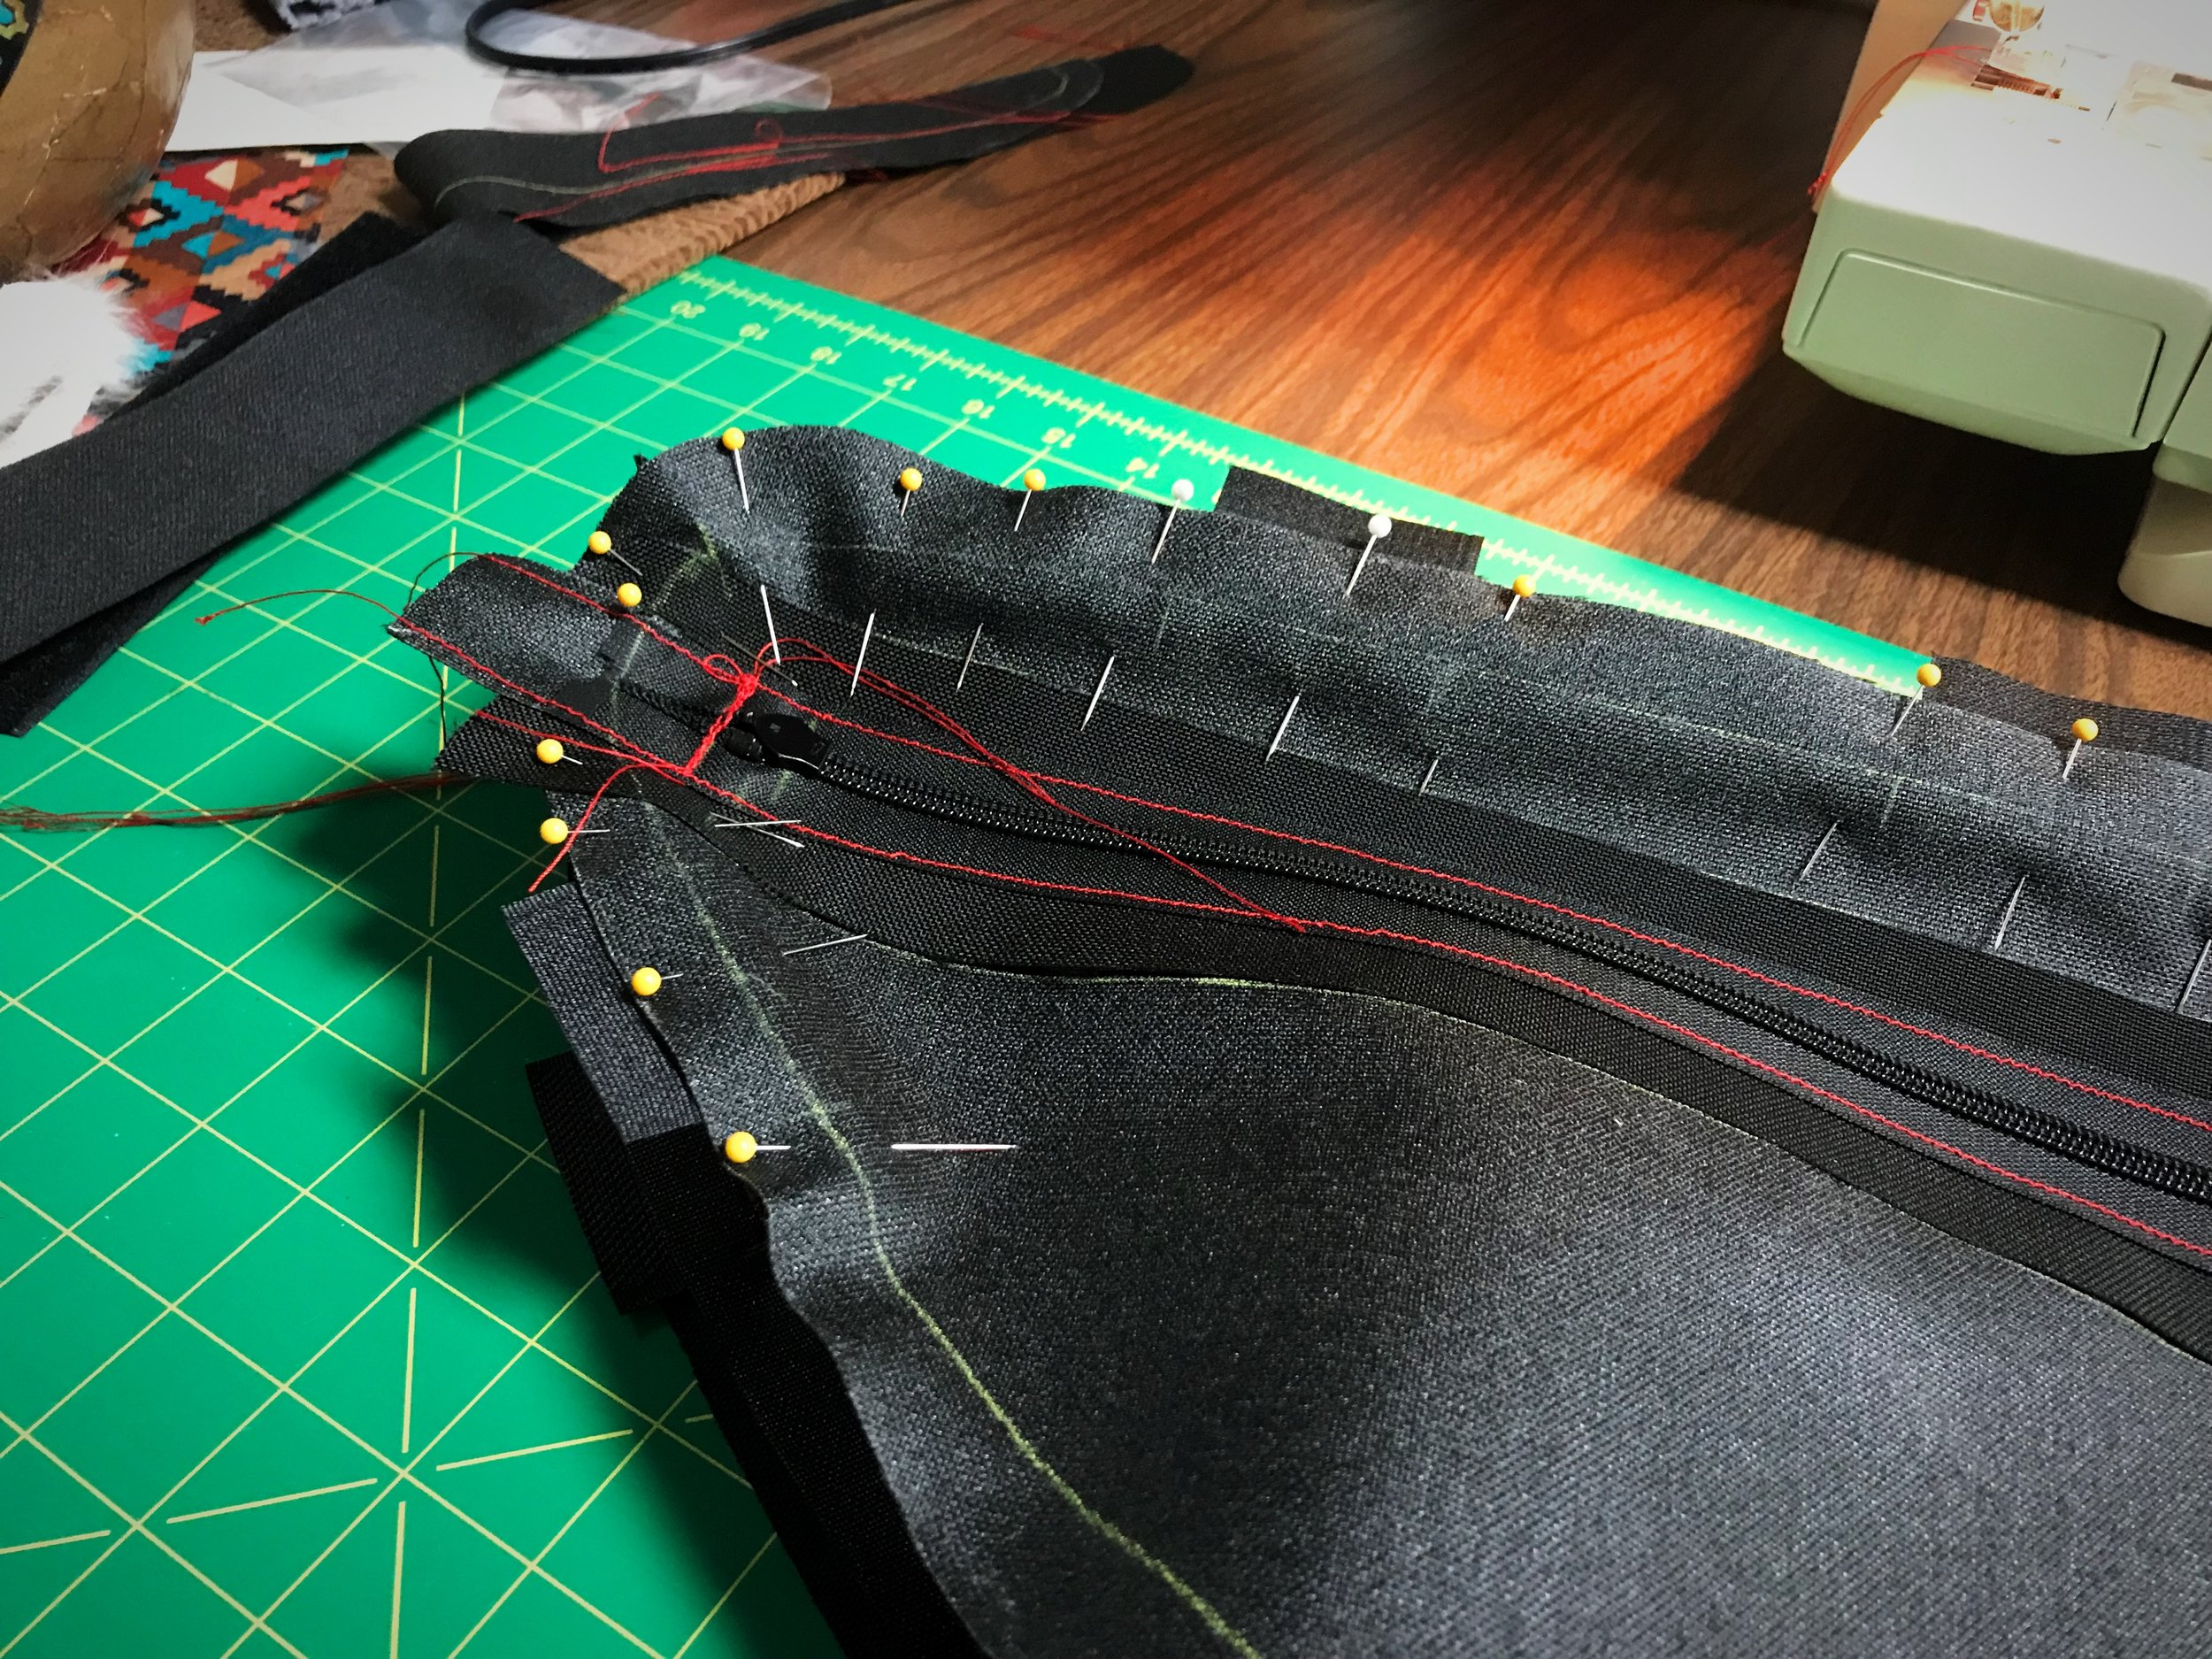 After attaching the edge piece to the first panel, sew the second panel onto the edge pieces. Sewing around the final corner can be a bit tricky, so using a lot of pins will help you hold keep the bag in shape.